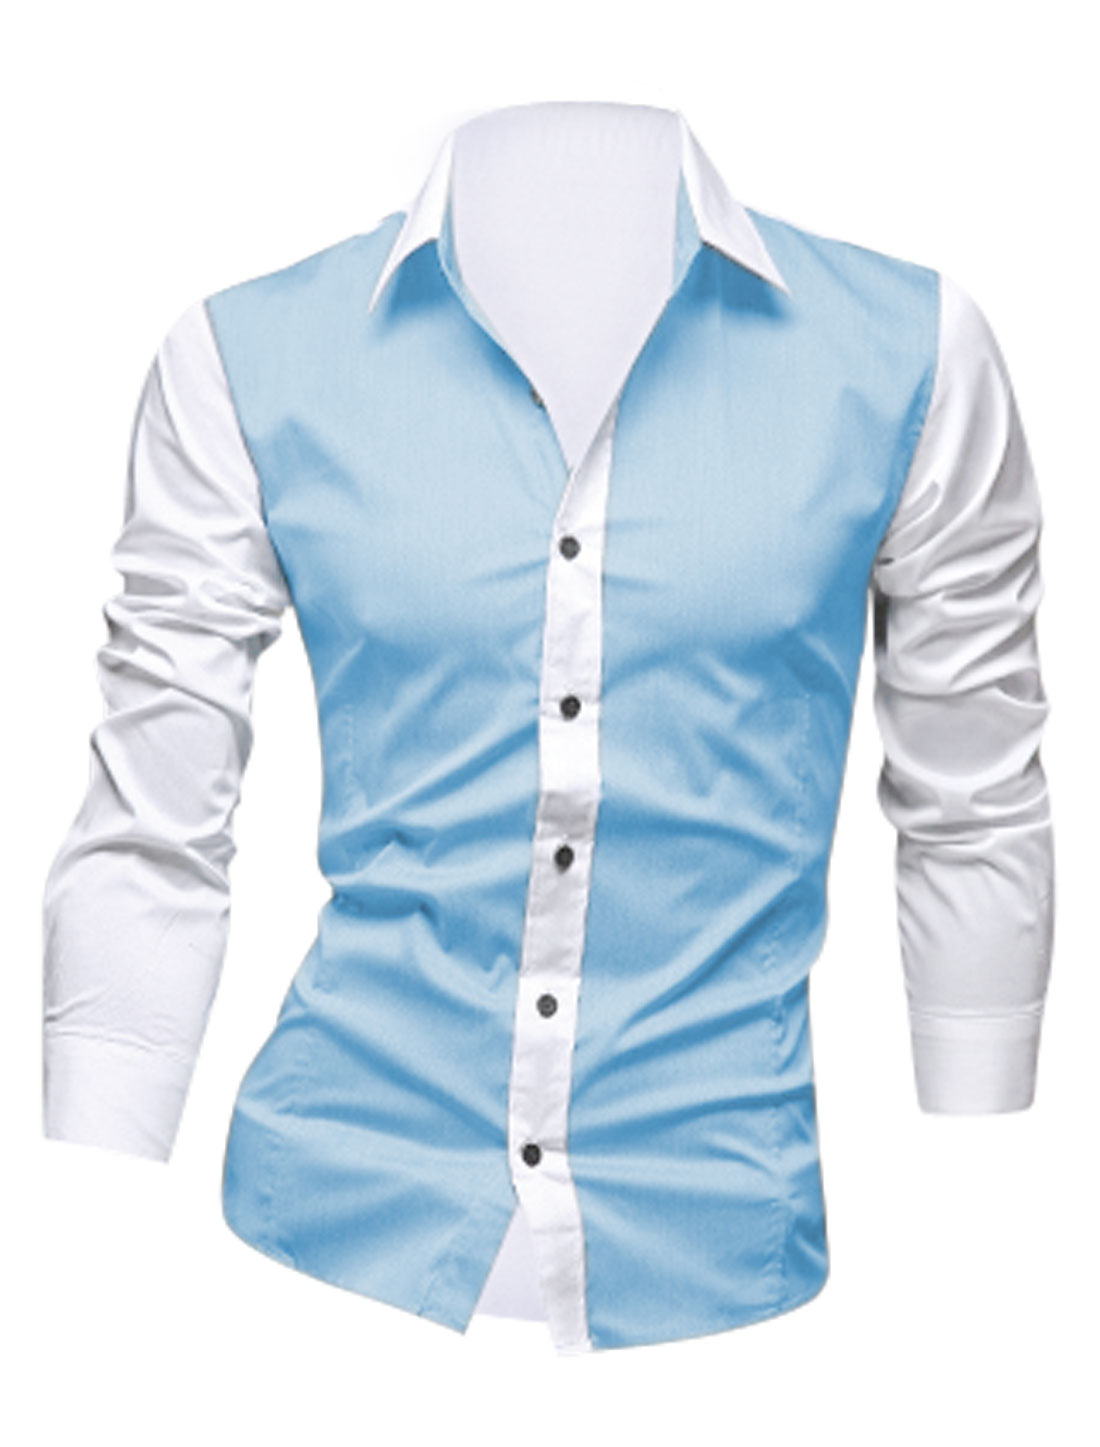 Men Color Block Long Sleeve Button Down Chic Shirts Sky Blue White M